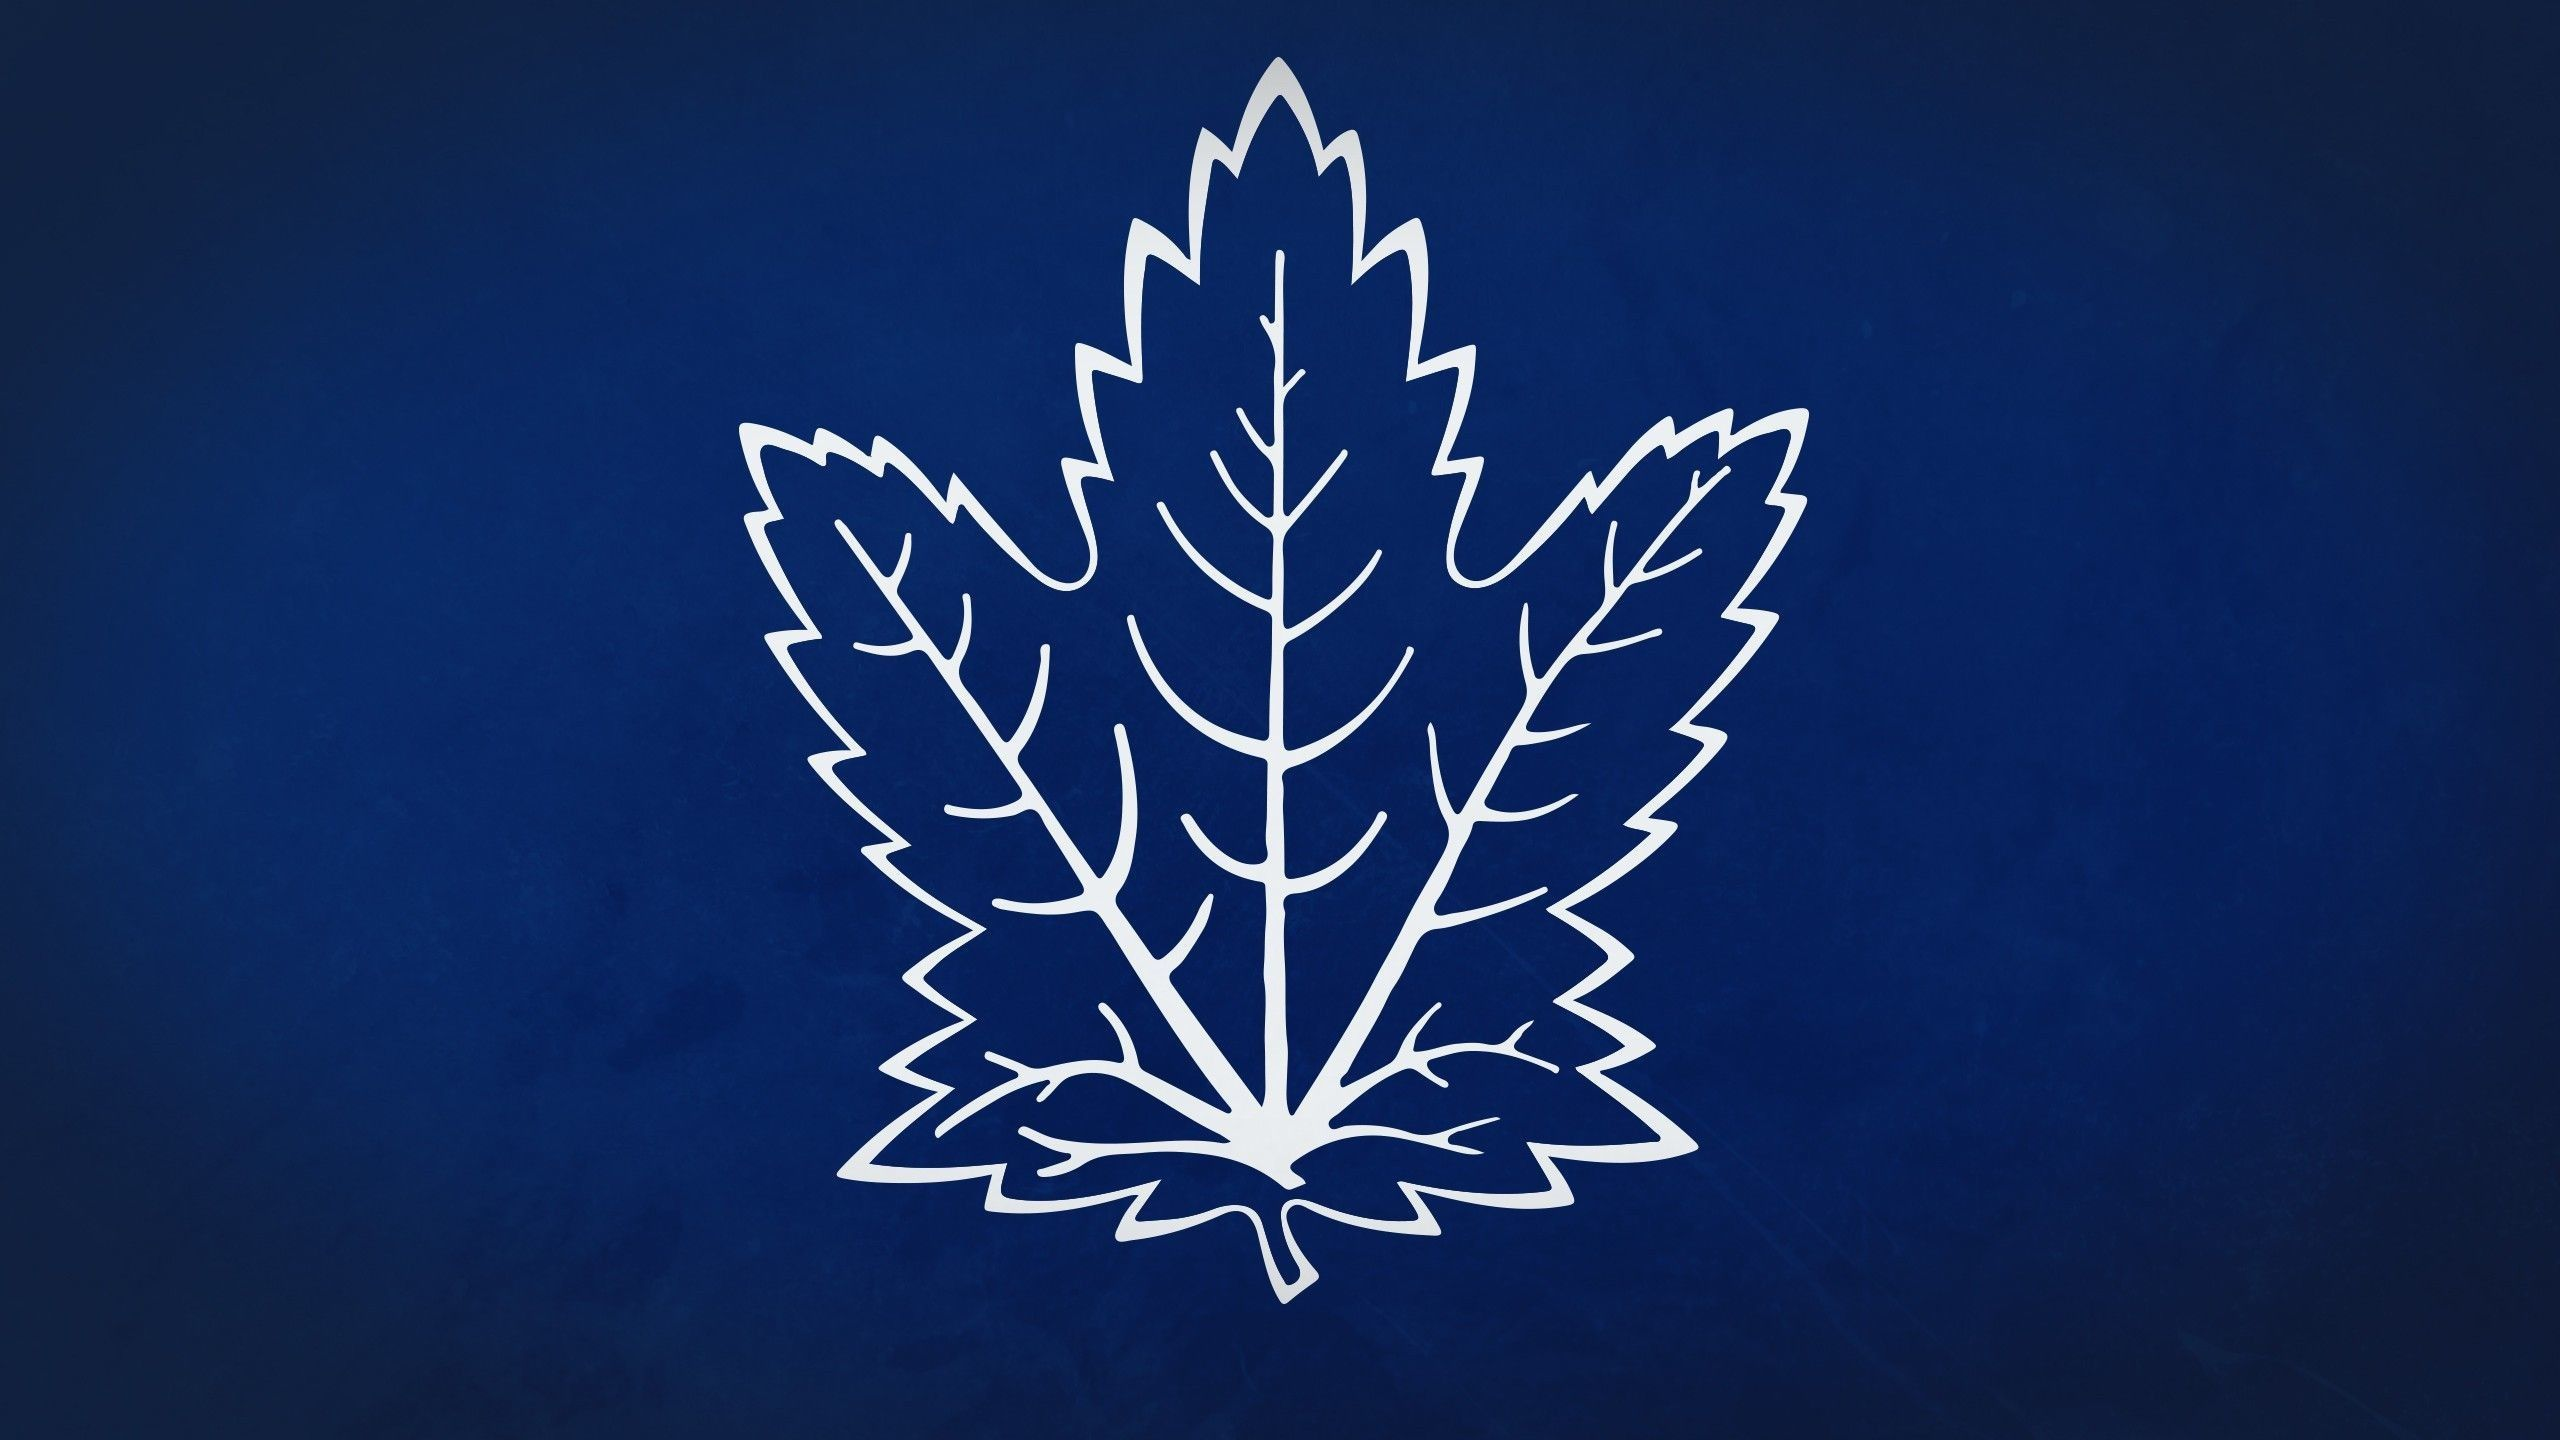 Toronto Maple Leafs Wallpapers Wallpaper  2560x1440